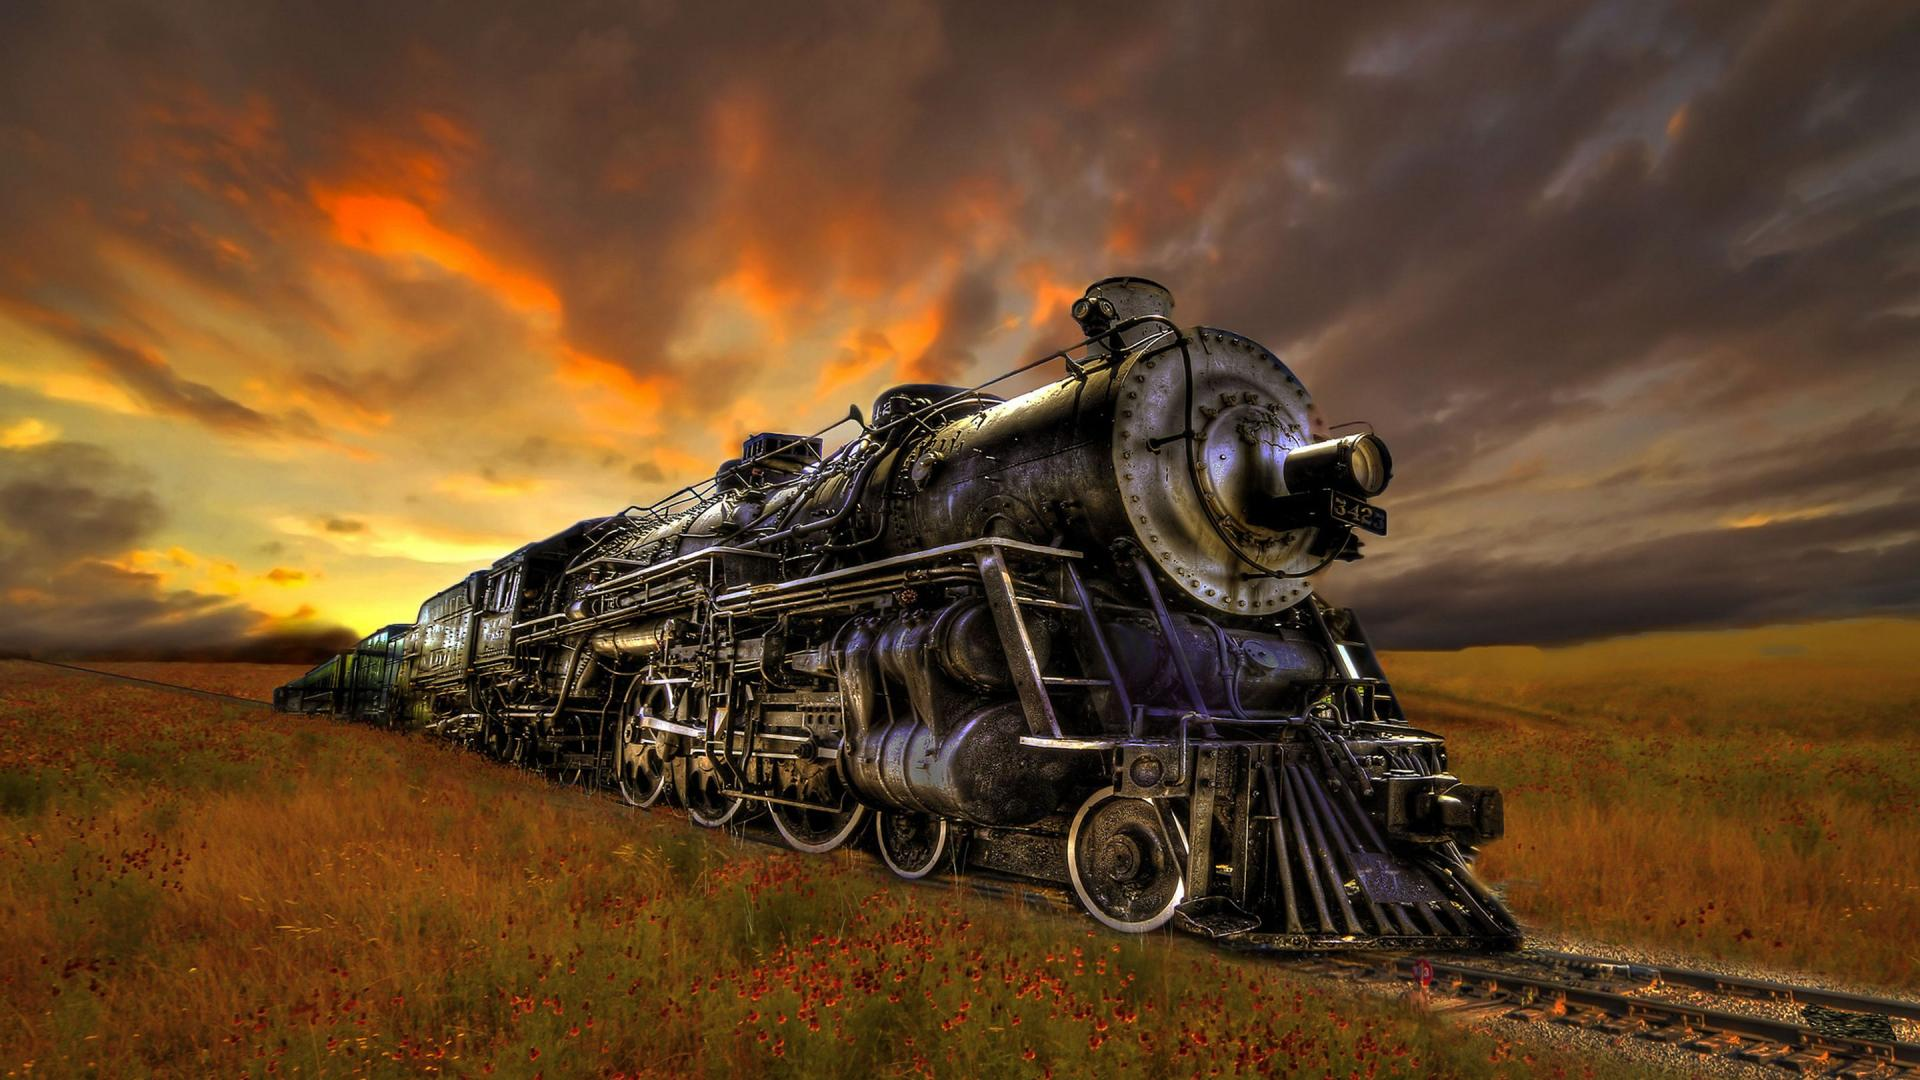 74] Locomotive Wallpaper on WallpaperSafari 1920x1080